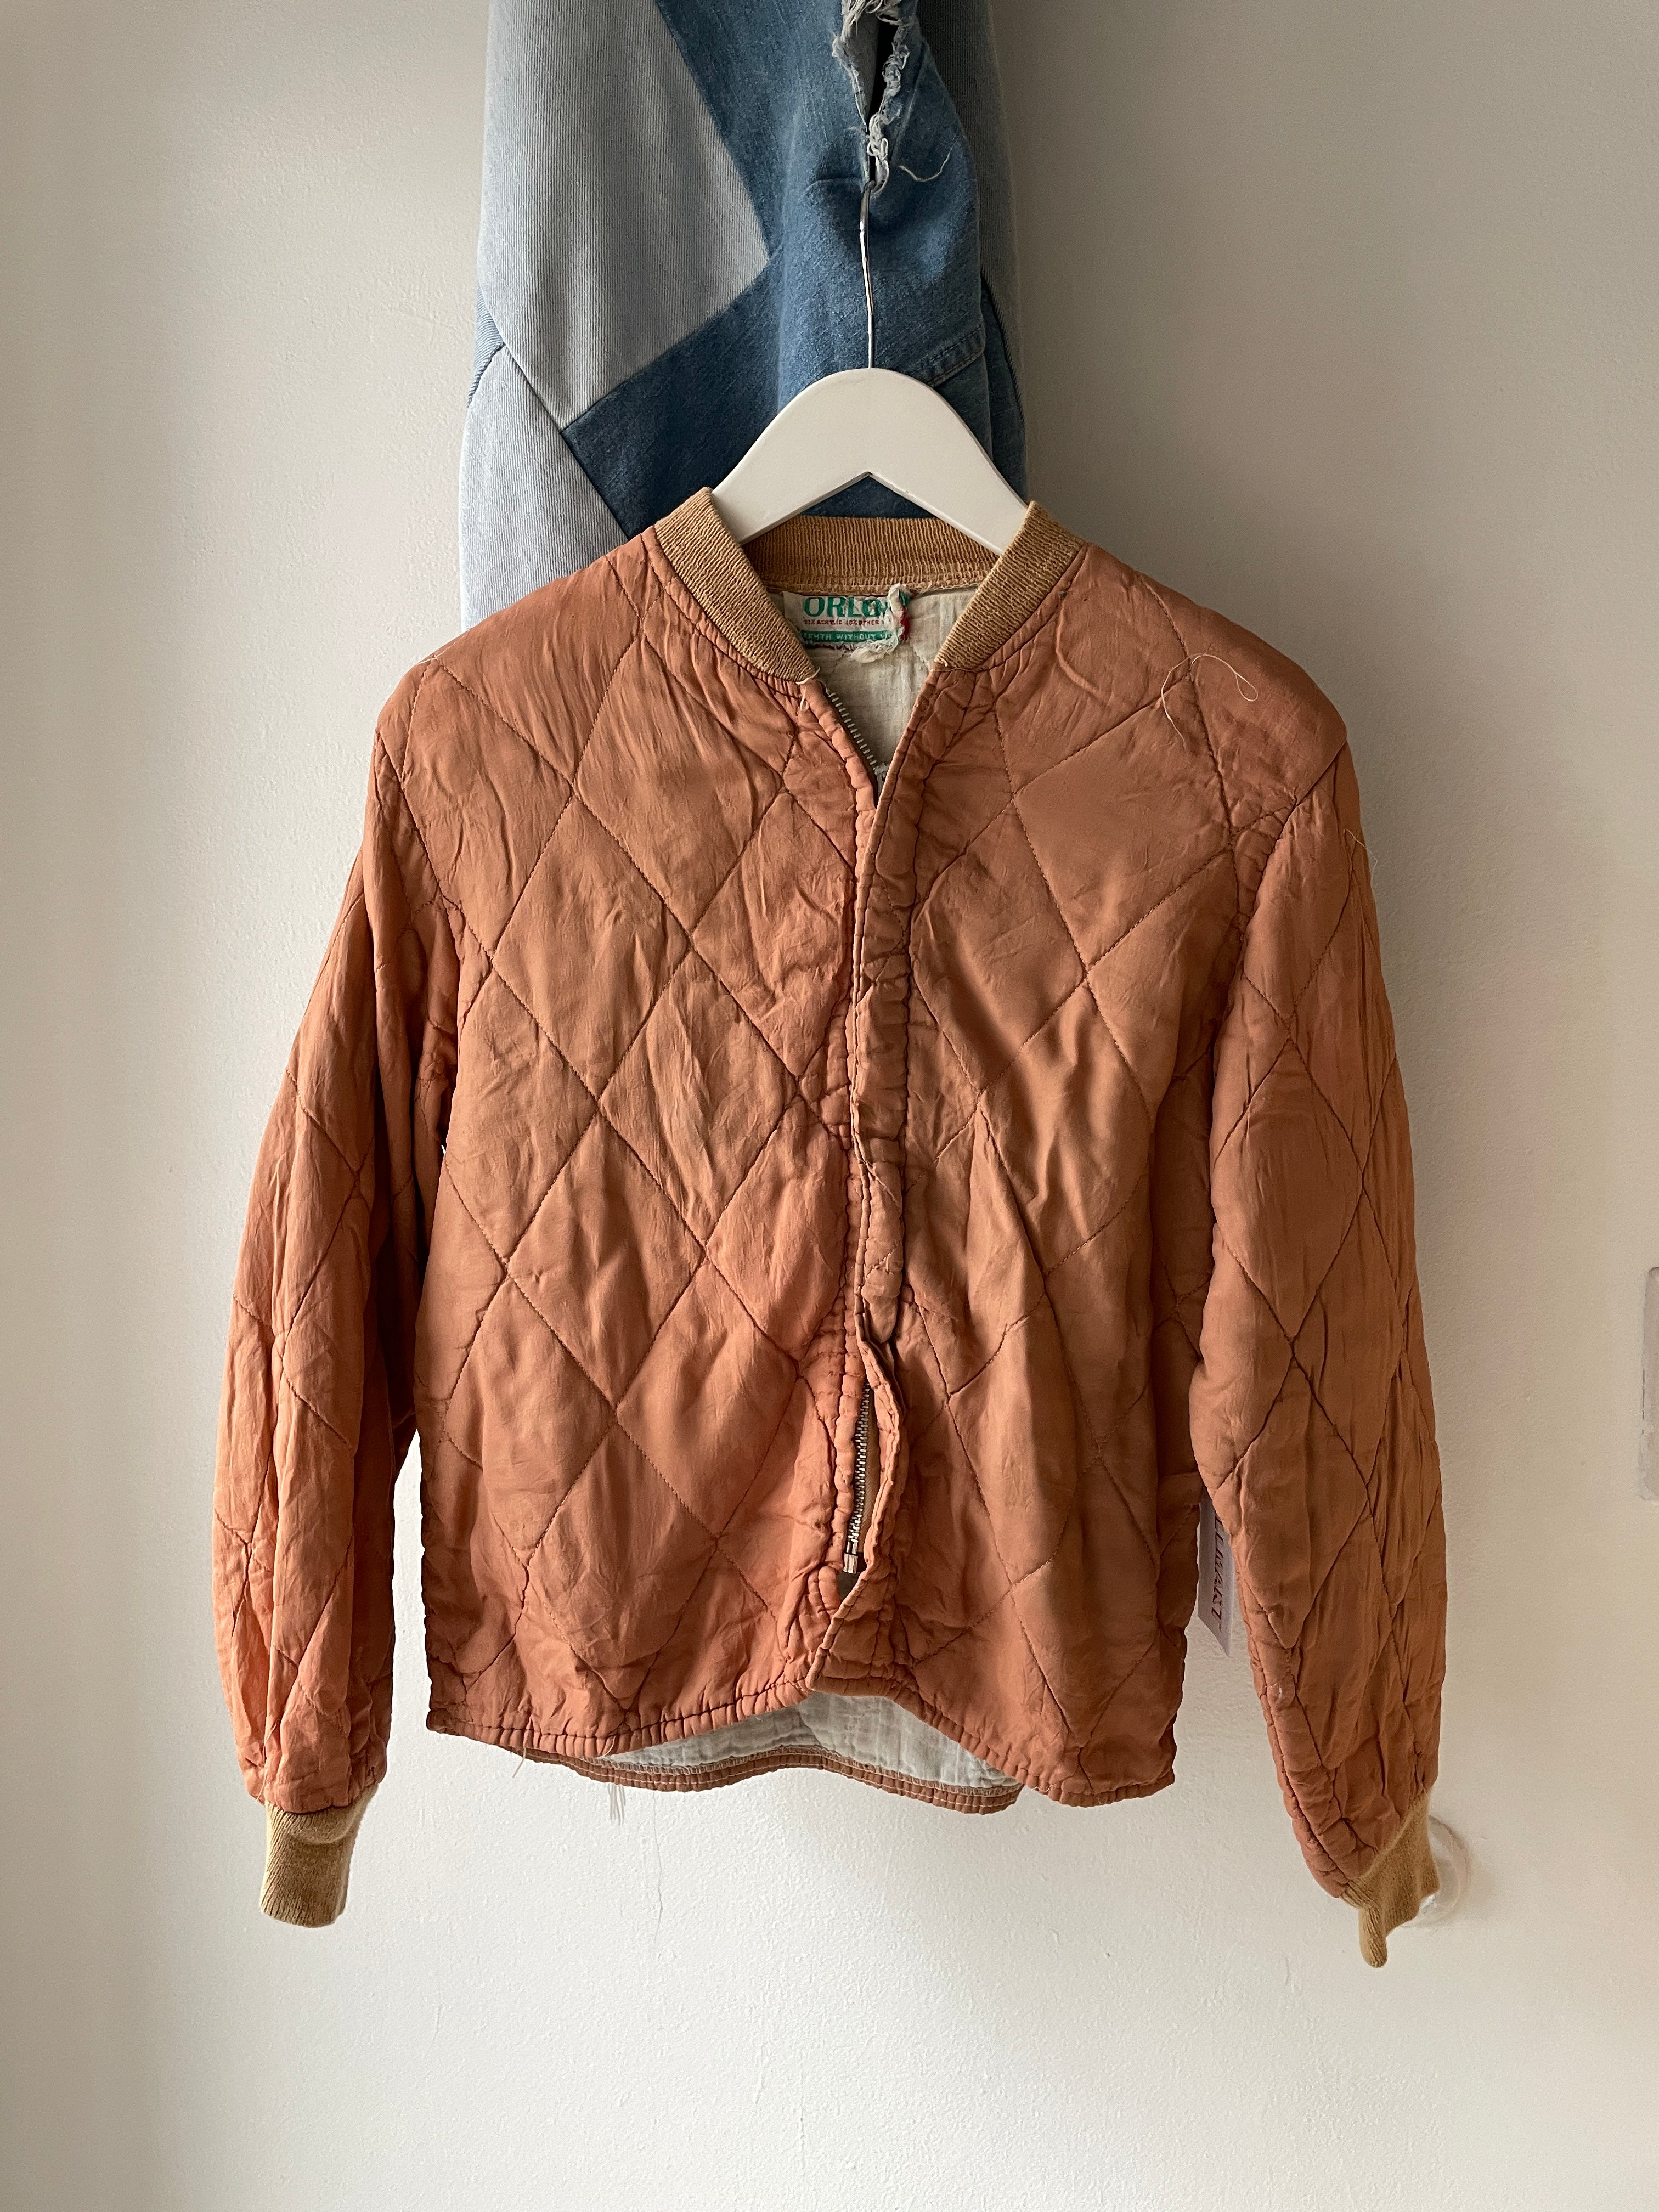 1960's Orlon Quilted Bomber Jacket (S)